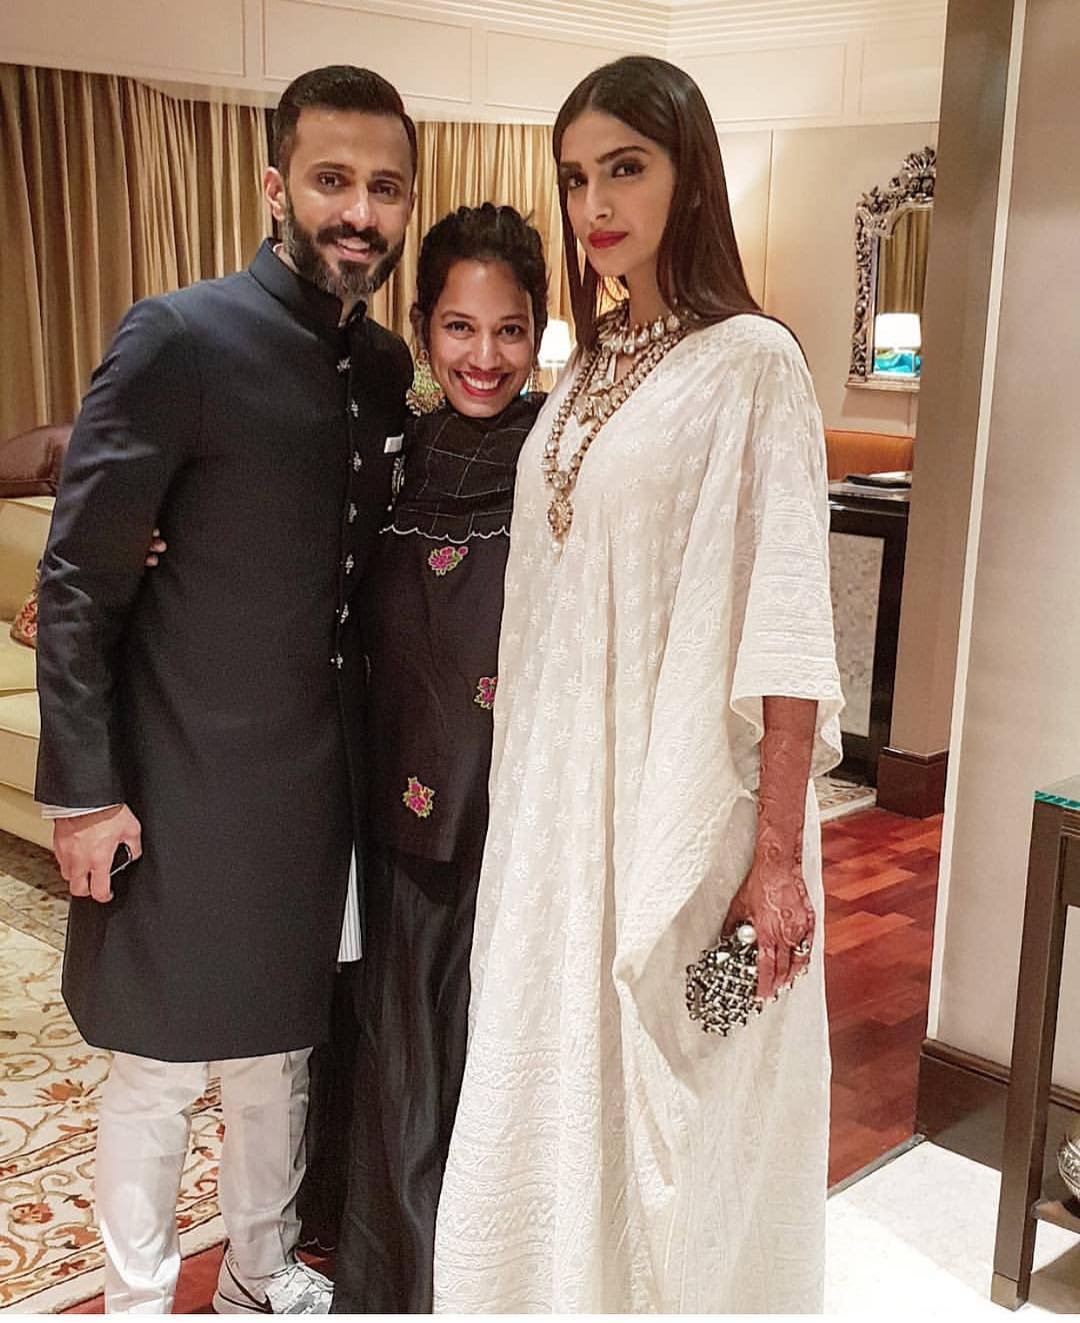 Sonam Kapoor's post-reception Abu Jani Sandeep Khosla's white dress